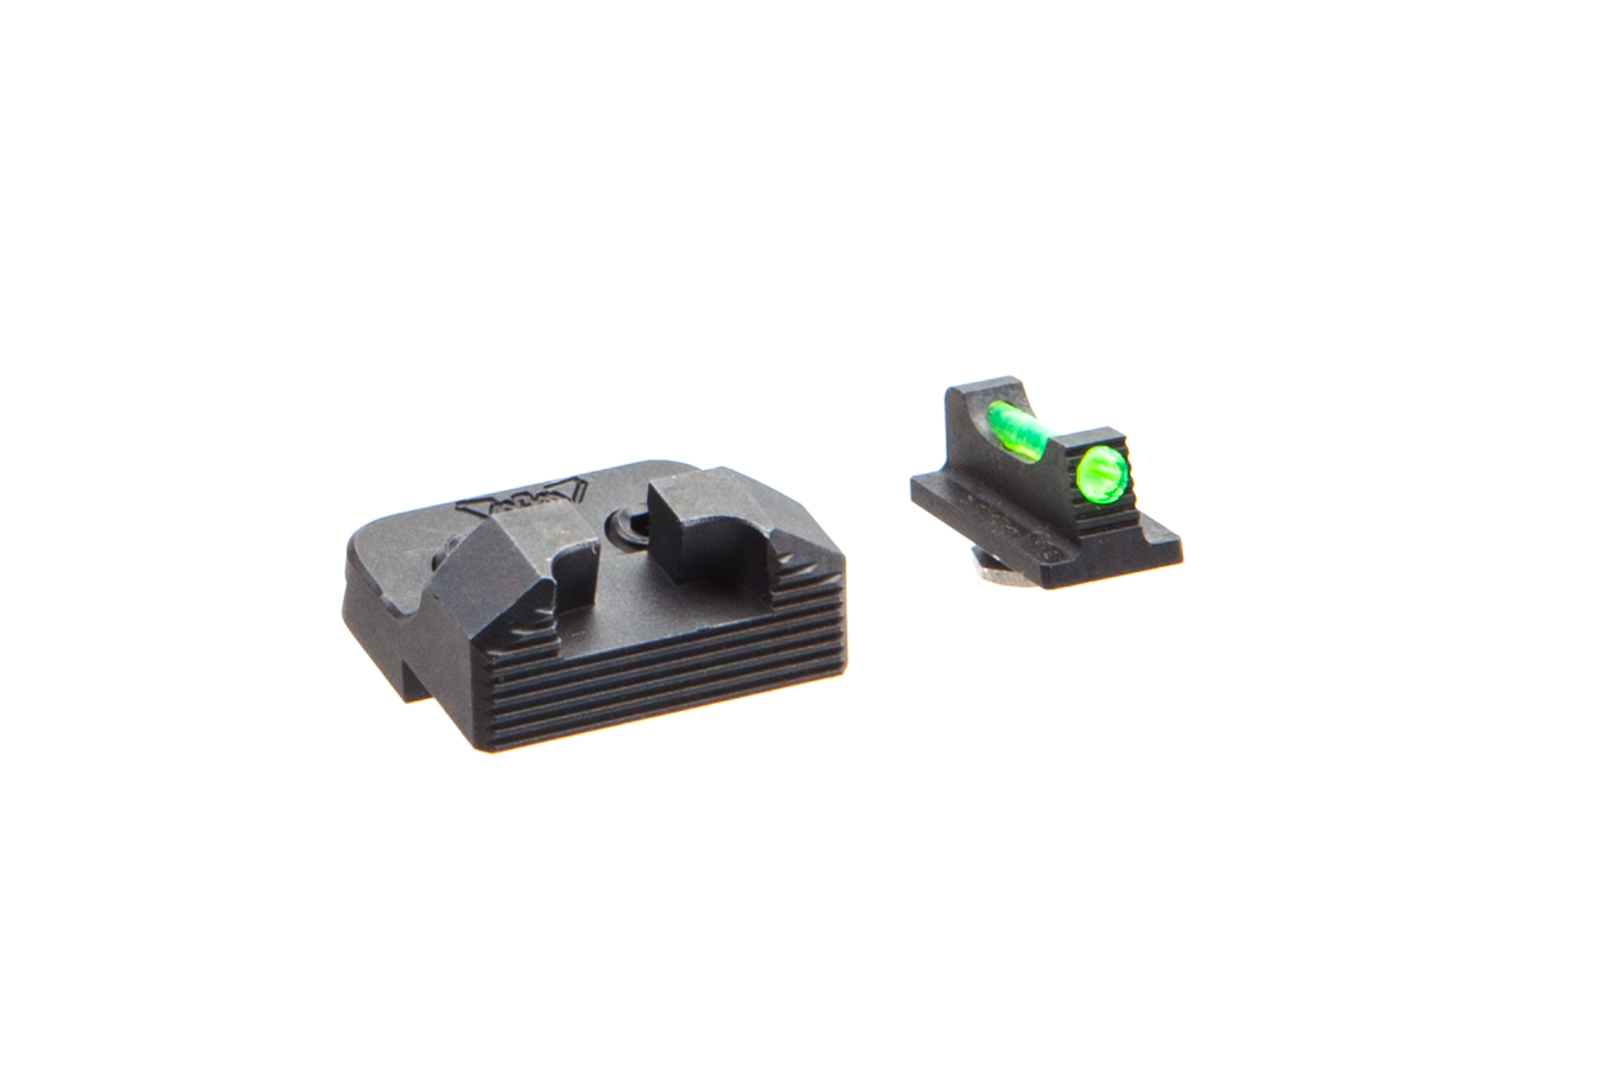 Statement Defense Glock Combat Precision - Compact Fiber Optic Iron Sights